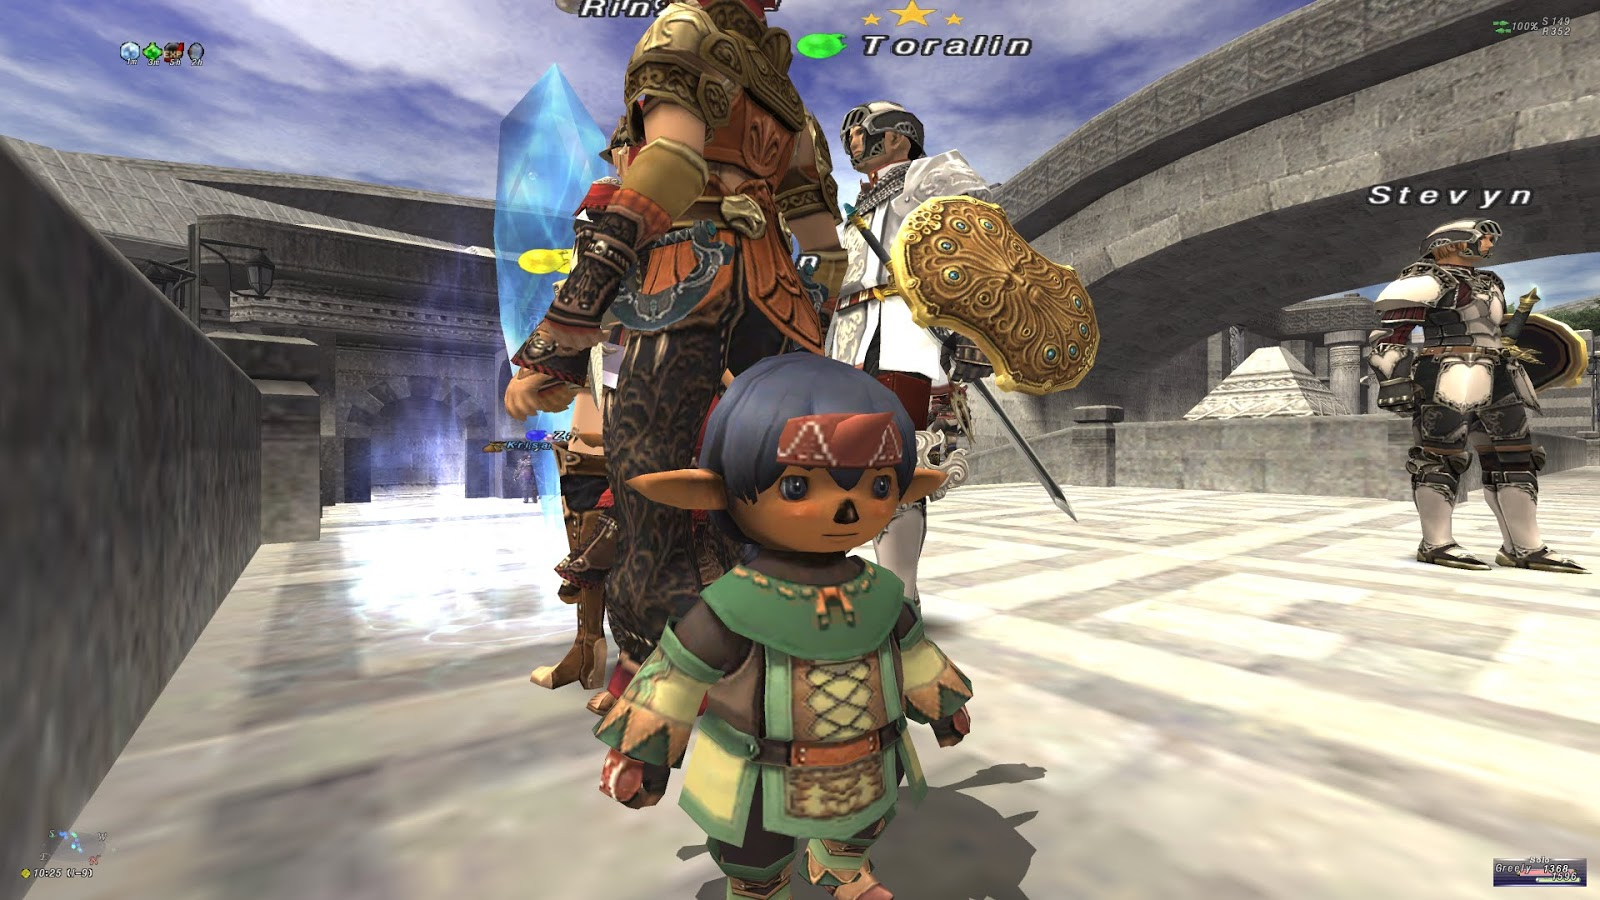 Final Fantasy XI released the May update, preparing to head to the 17th anniversary 1